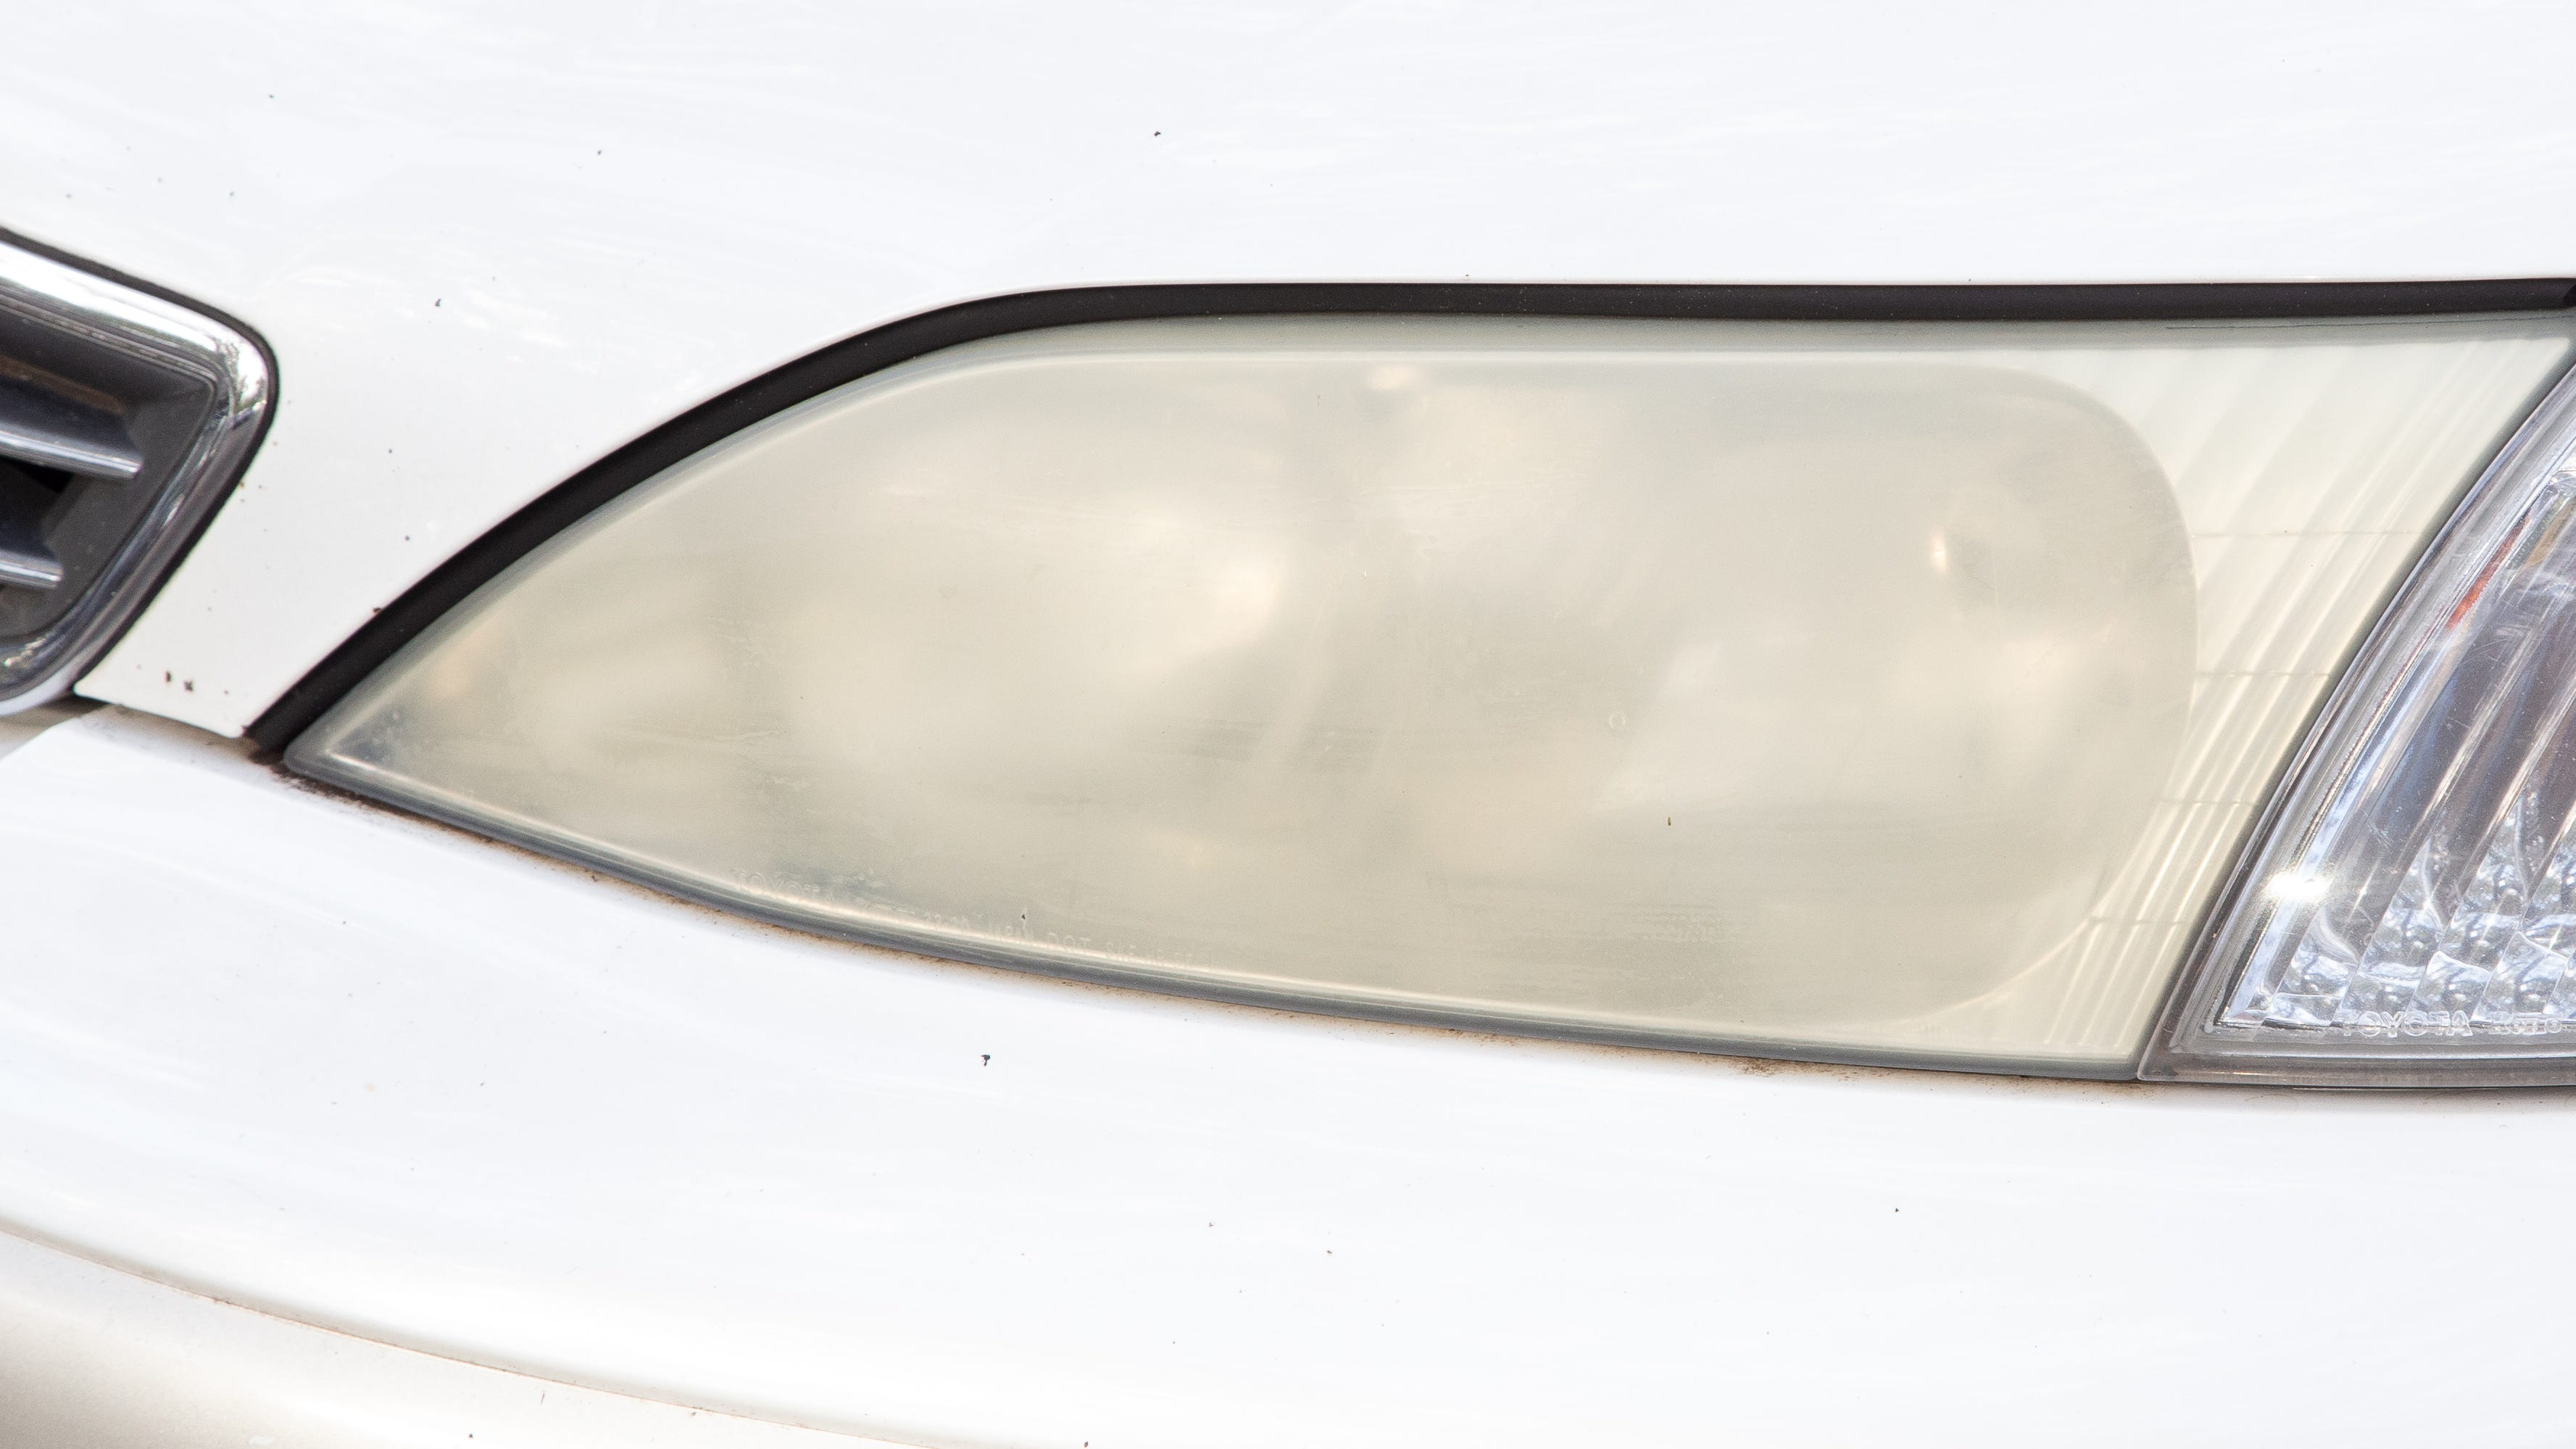 Headlights become clouded or yellowed after years of use, creating a major safety concern for motorists. AAA finds that the average 11-year-old vehicle's headlights generate 20 percent of the illumination as new headlights.